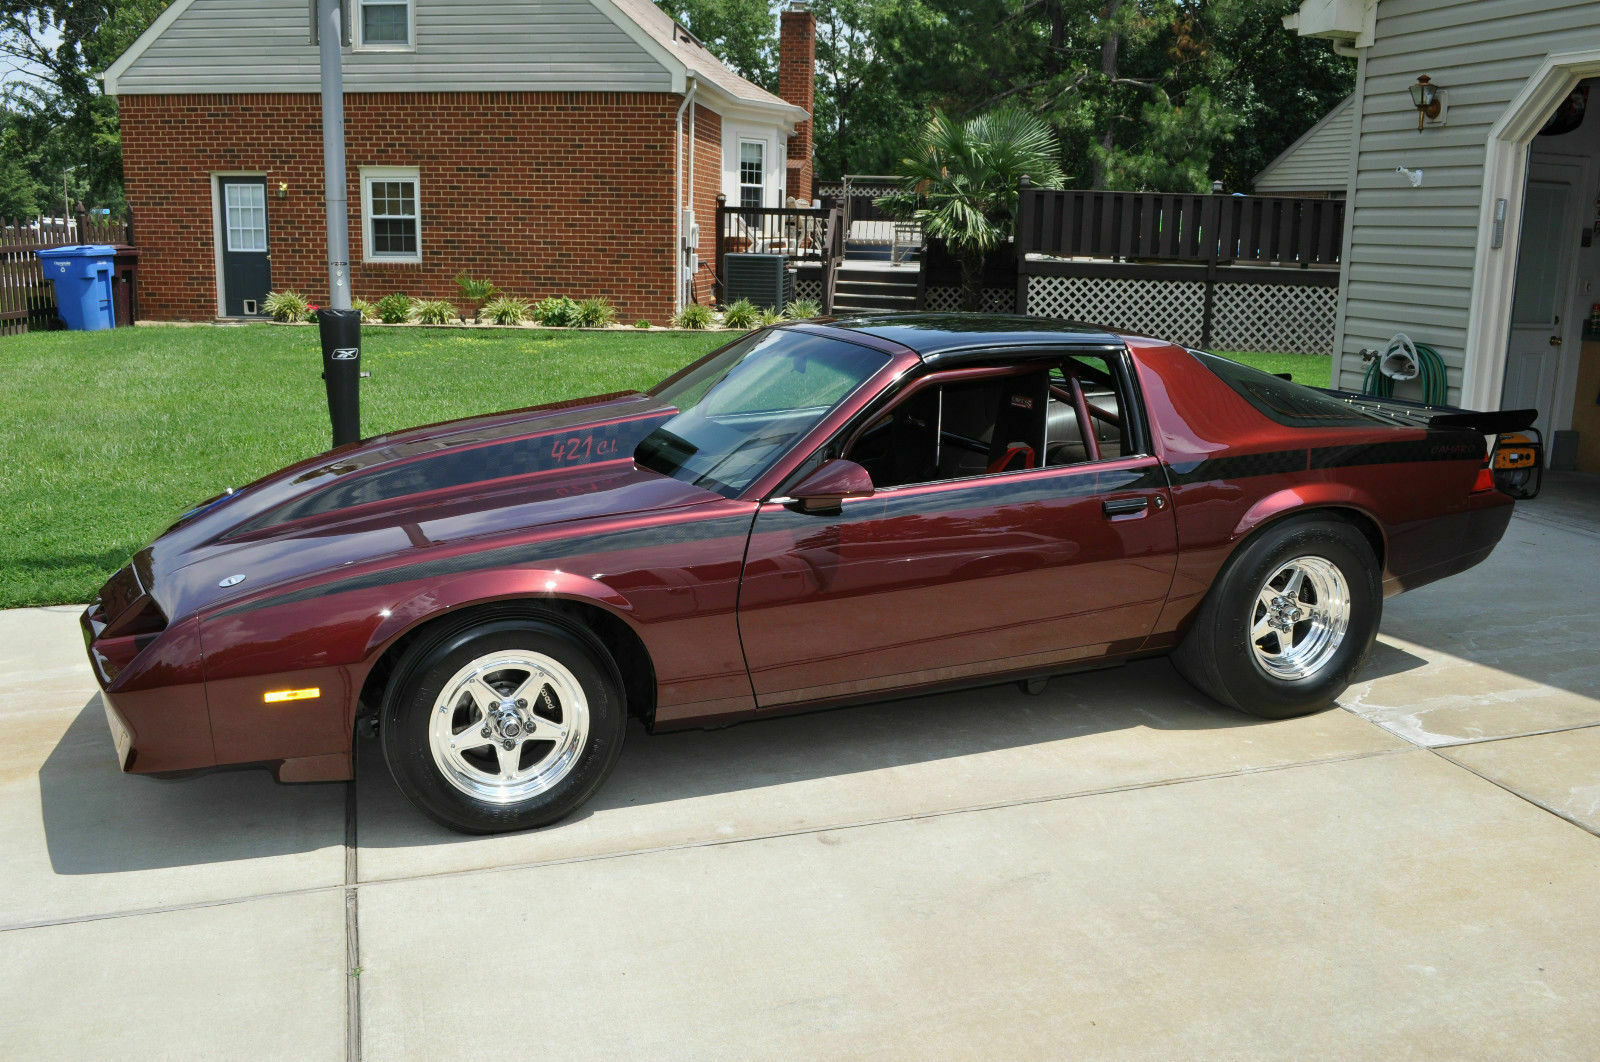 We'll Take It All: 1983 Chevrolet Camaro, Trailer, and Gear Too?